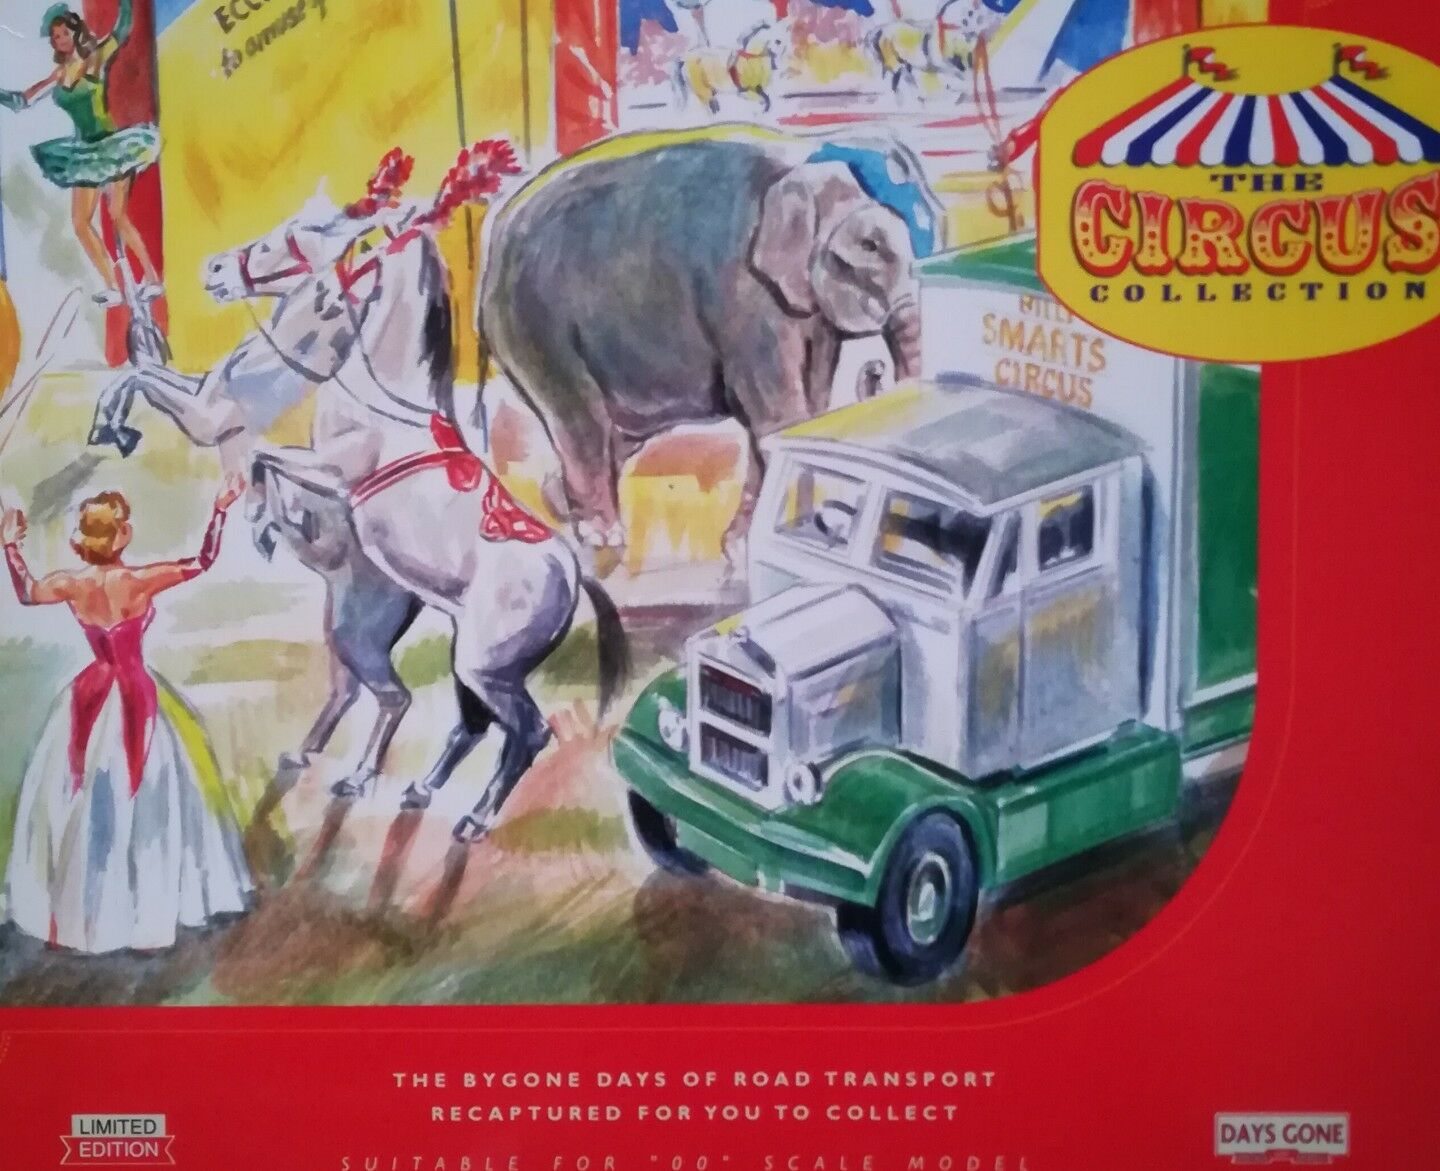 Lledo Days Gone, The circus collection (billy smarts) NS1002 Scale  1 76